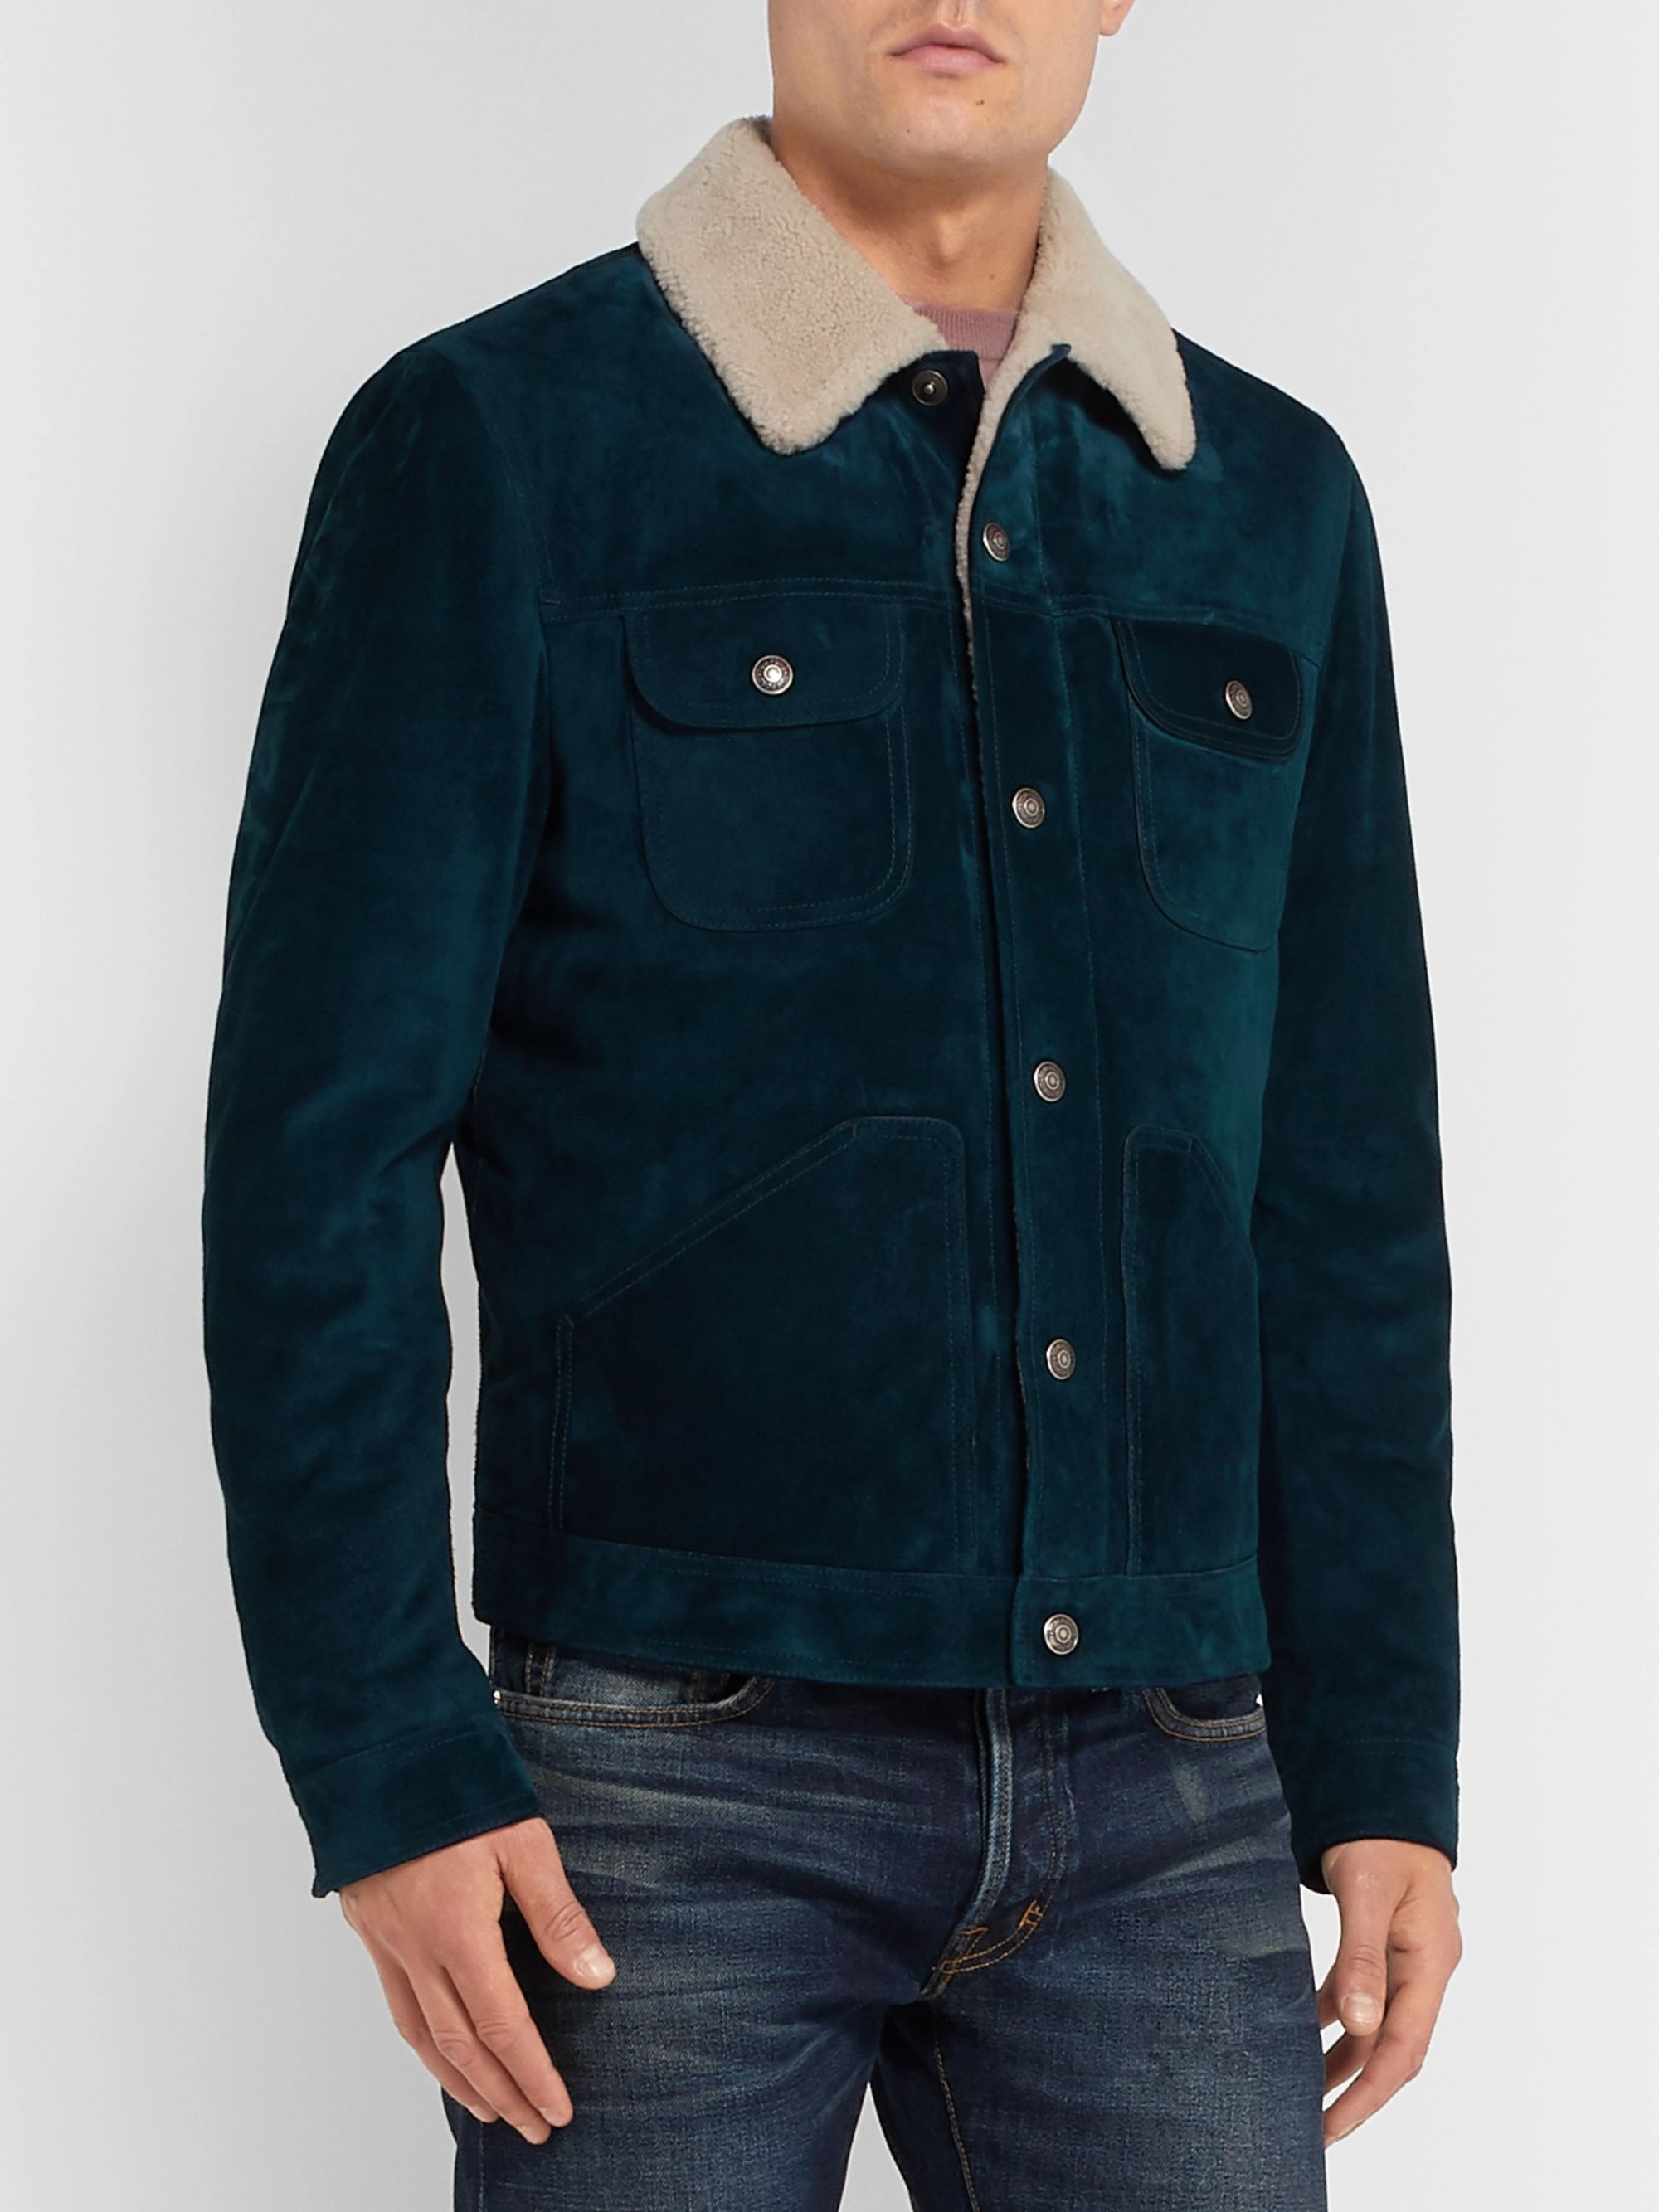 TOM FORD Shearling Trucker Jacket